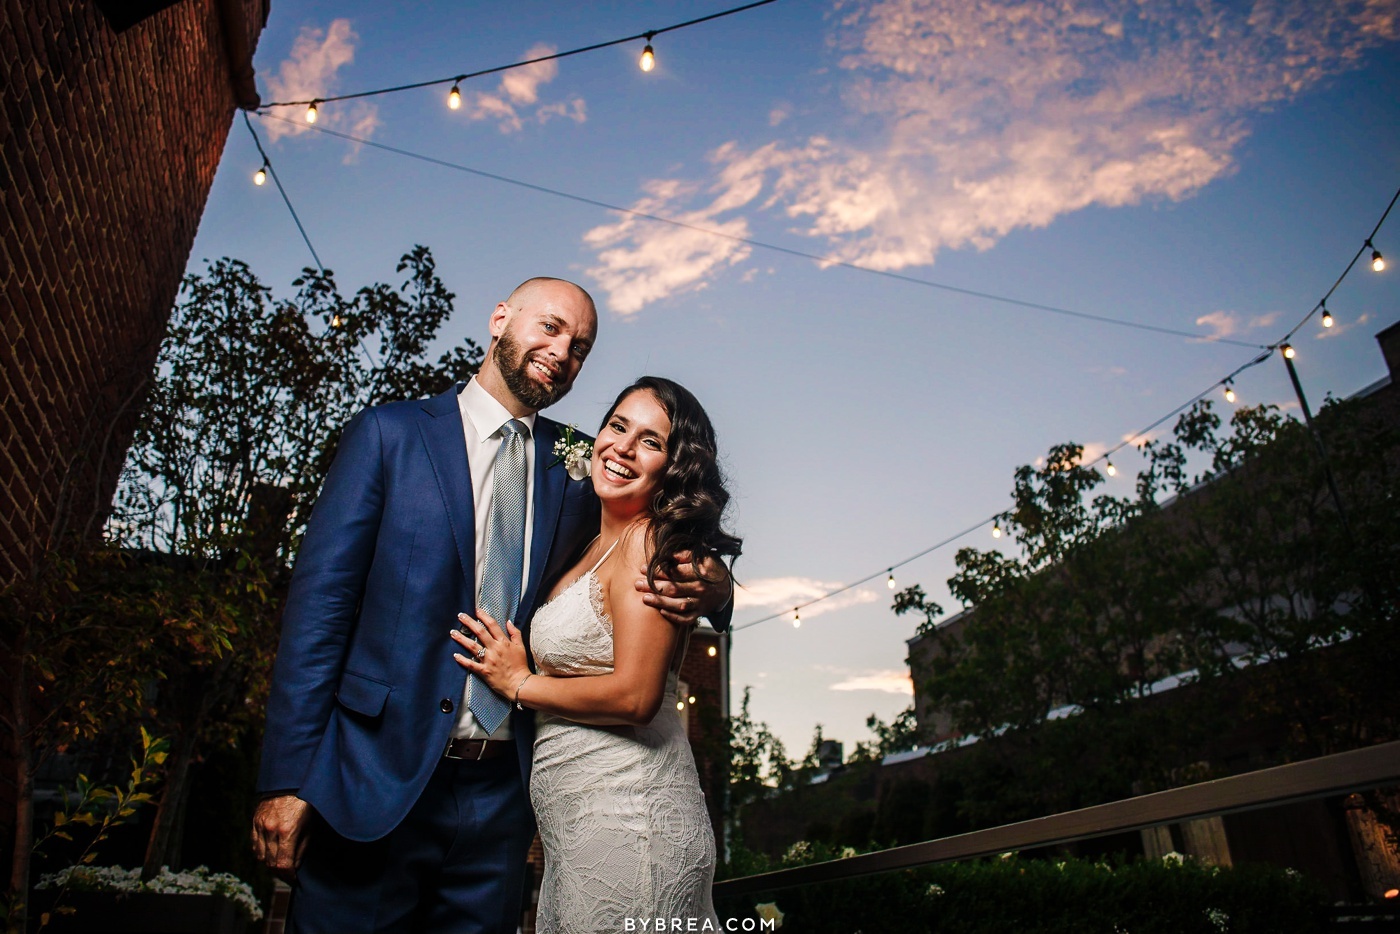 Rooftop wedding sunset photo at Fathom Creative in DC